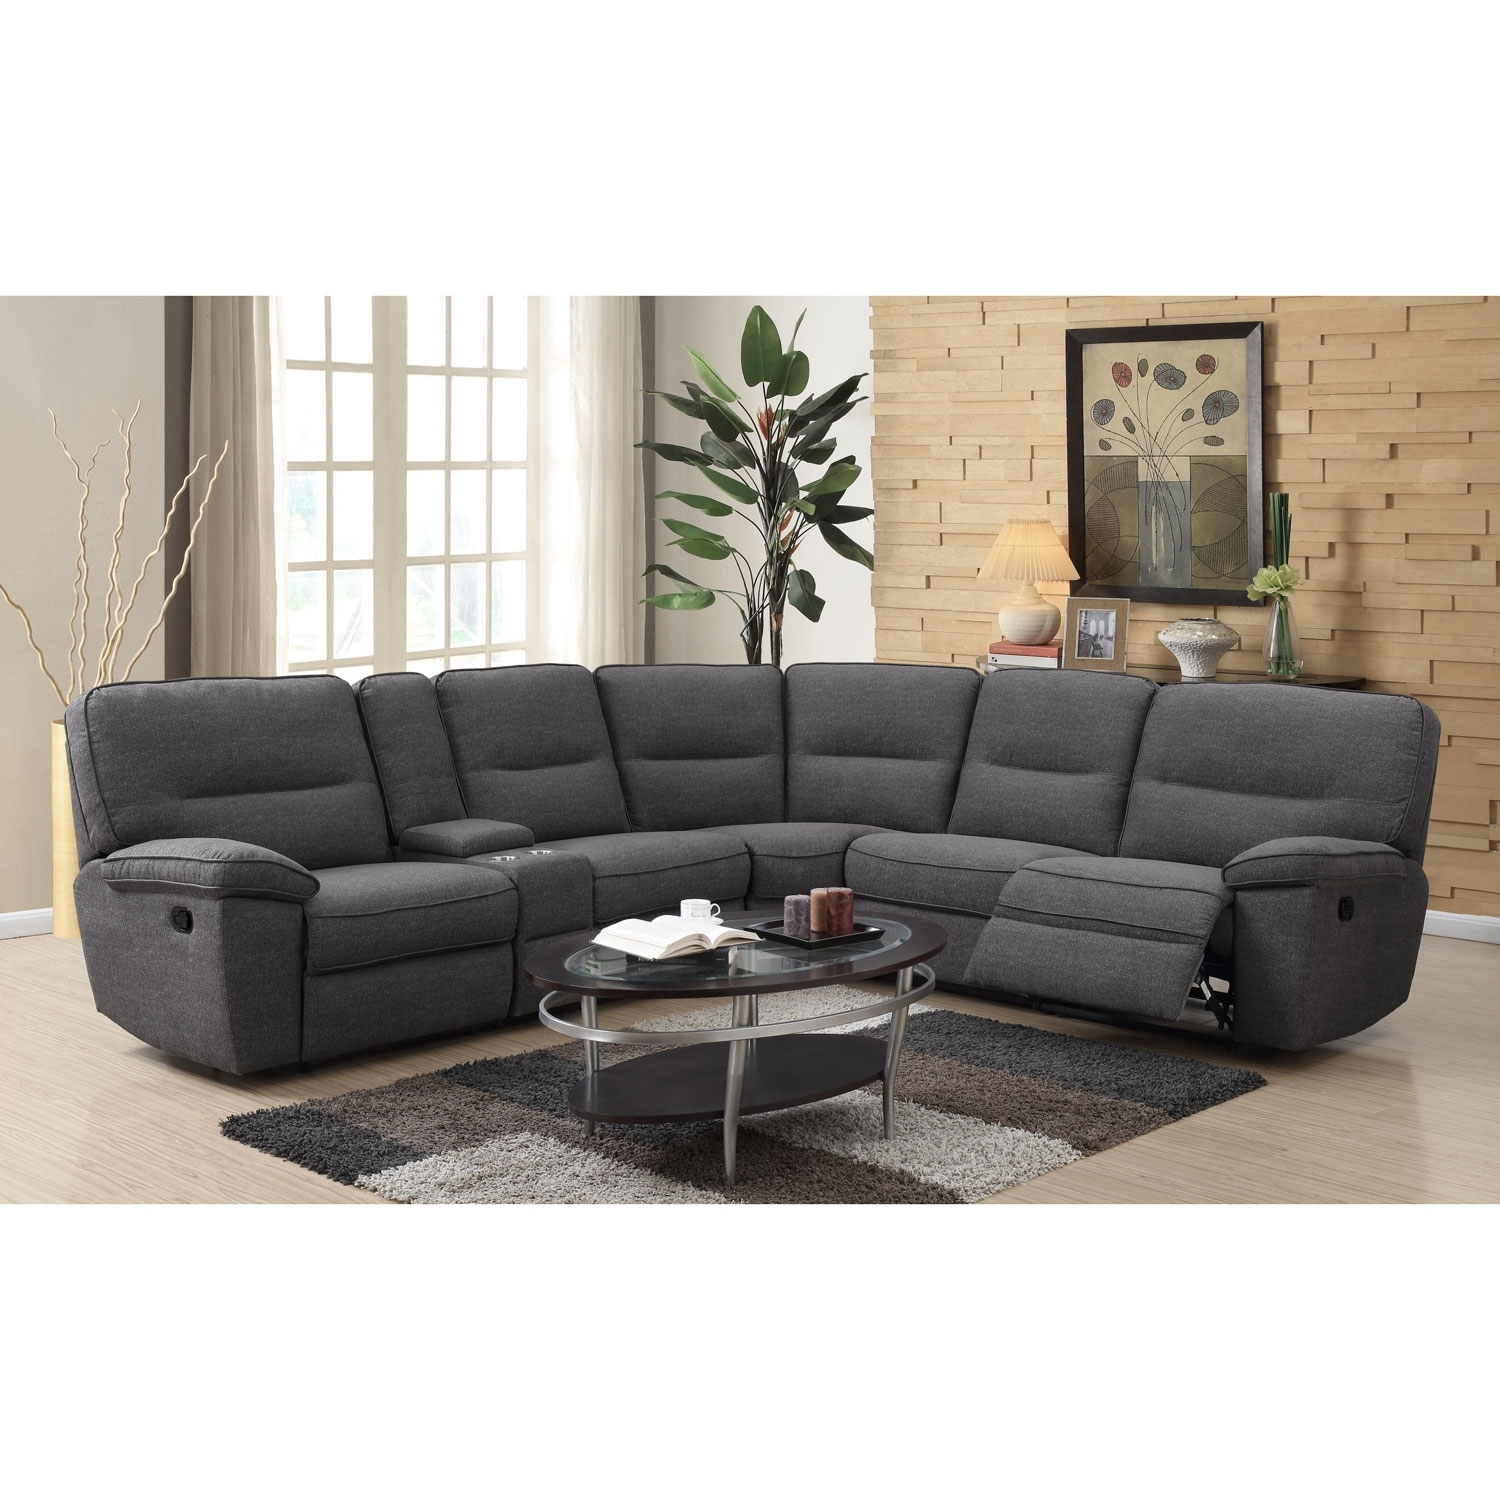 Emerald Home Furnishings Emerald Home Alberta 6 Piece Sectional Intended For Norfolk Grey 6 Piece Sectionals (Photo 4 of 30)